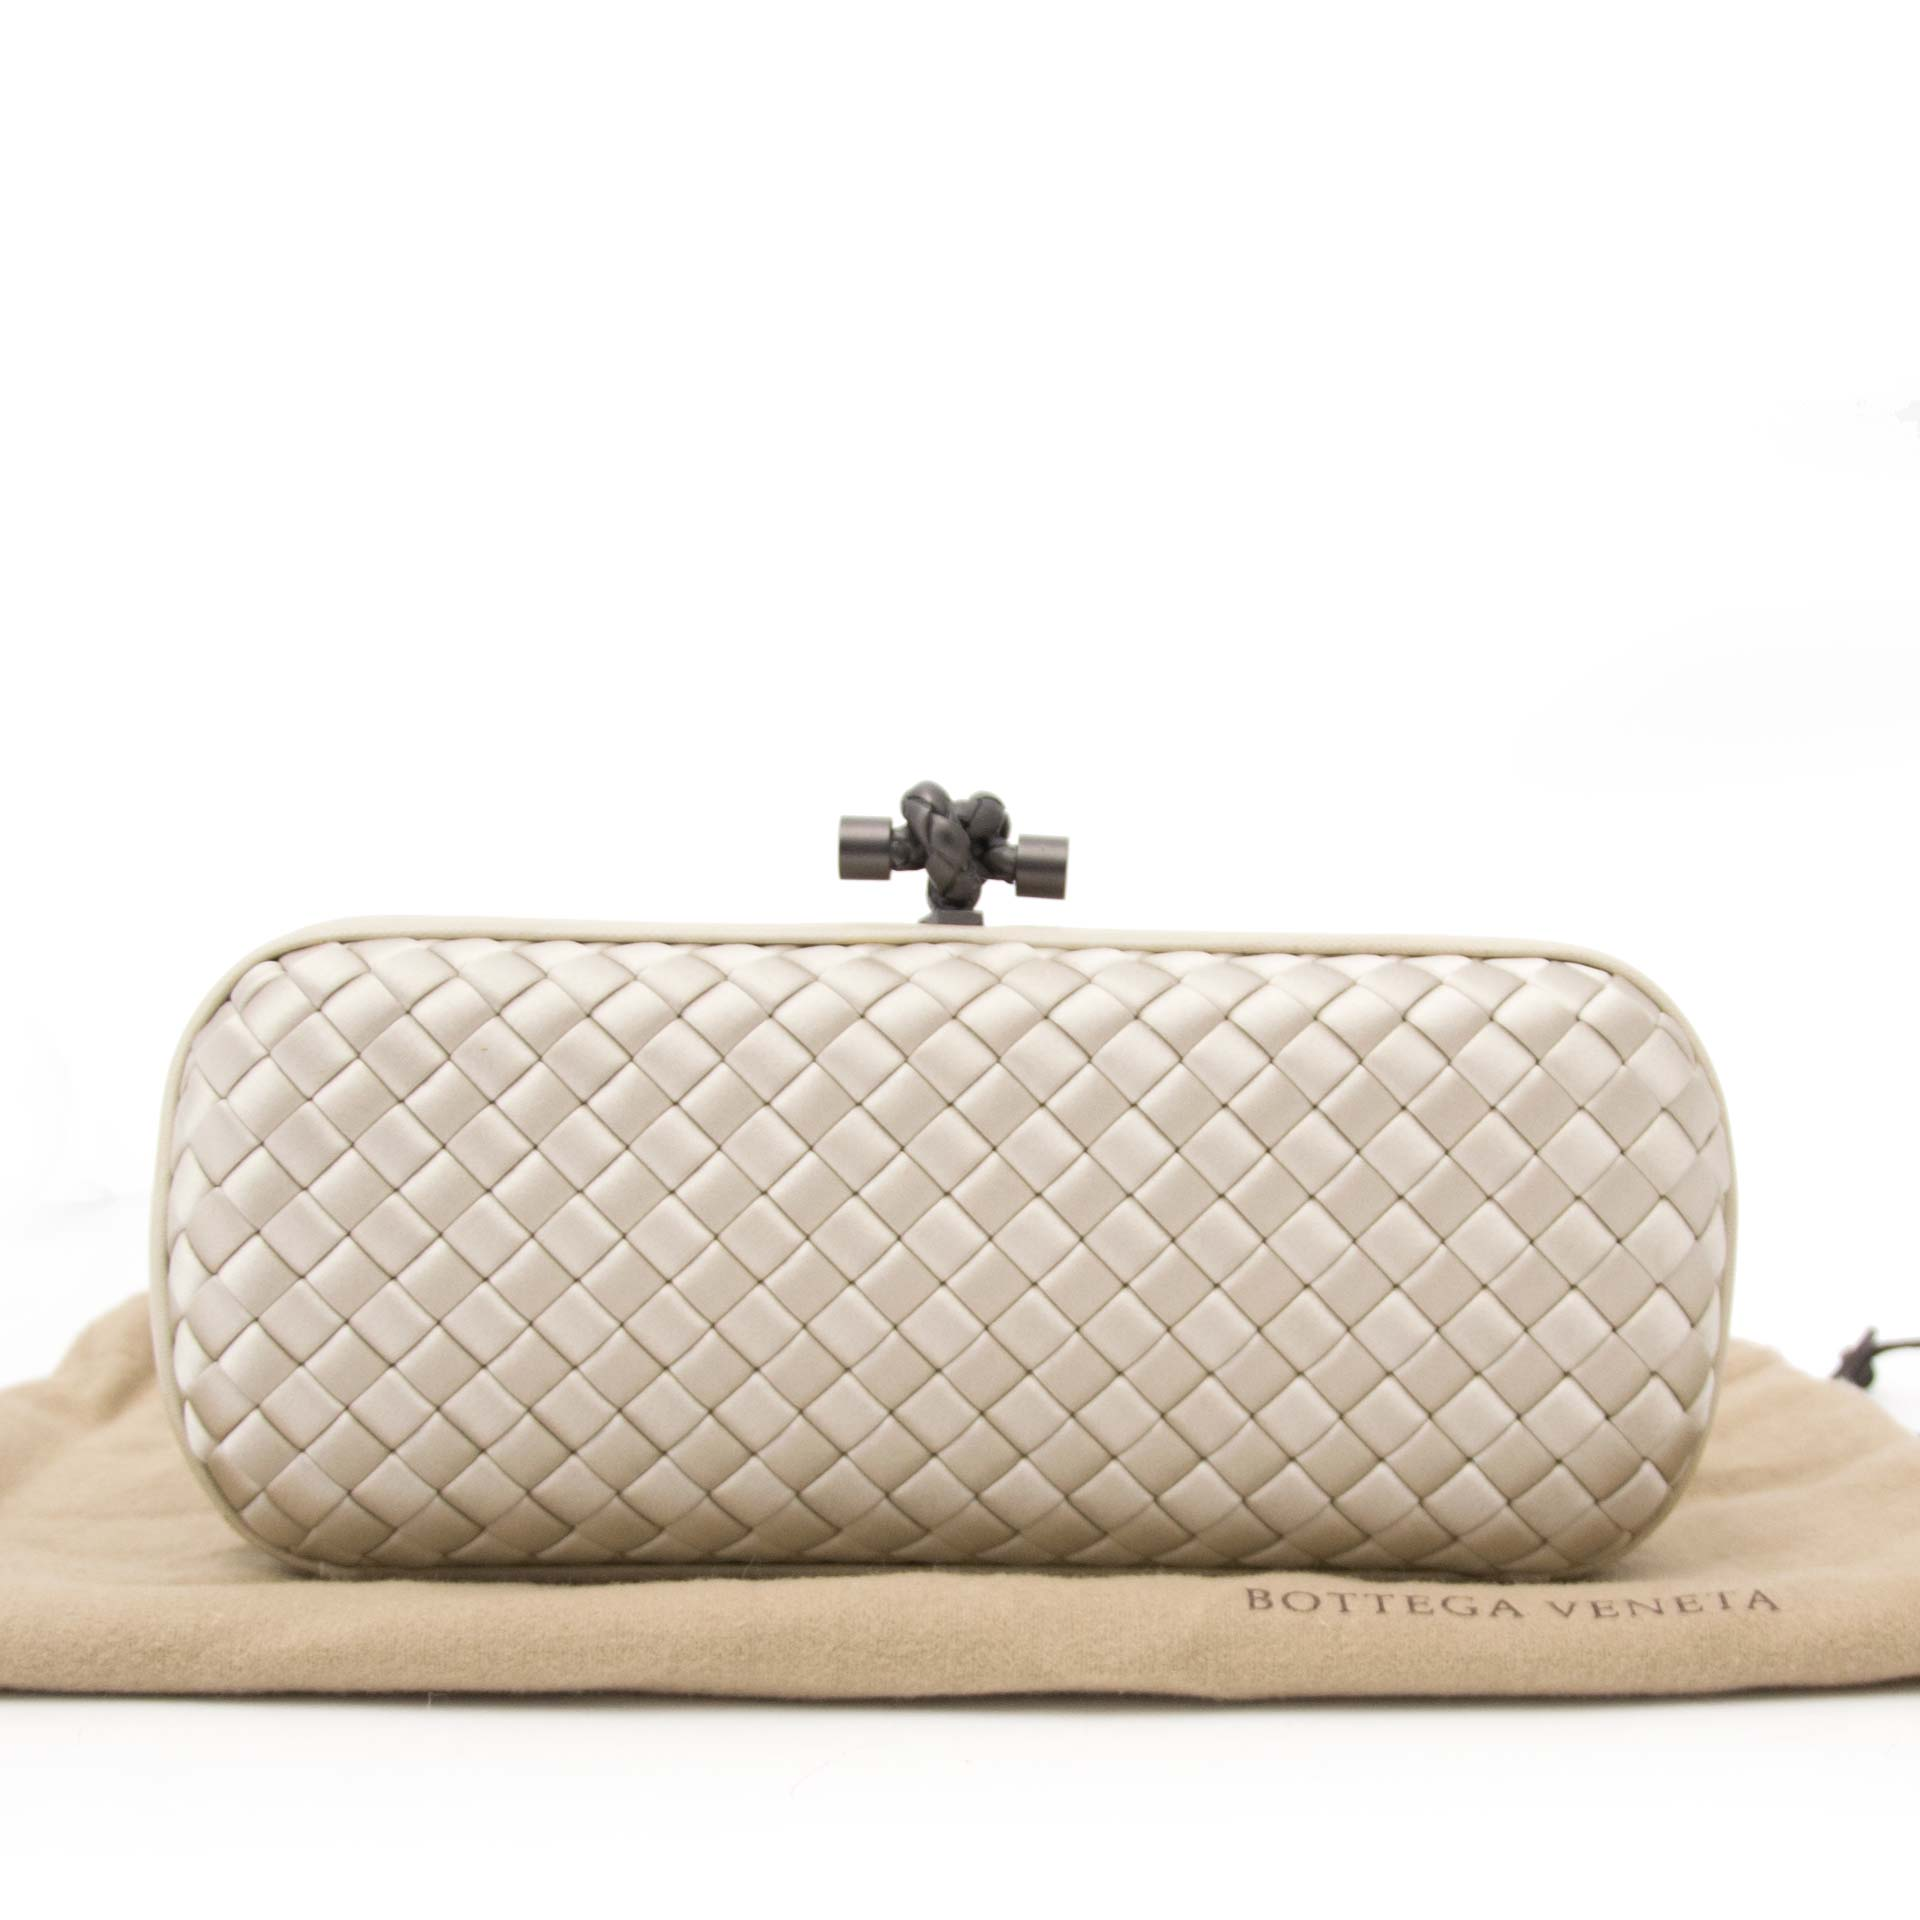 looking for a secondhand Bottega Veneta Satin Intreccio Impero Ayers Stretch Knot Grey Clutch